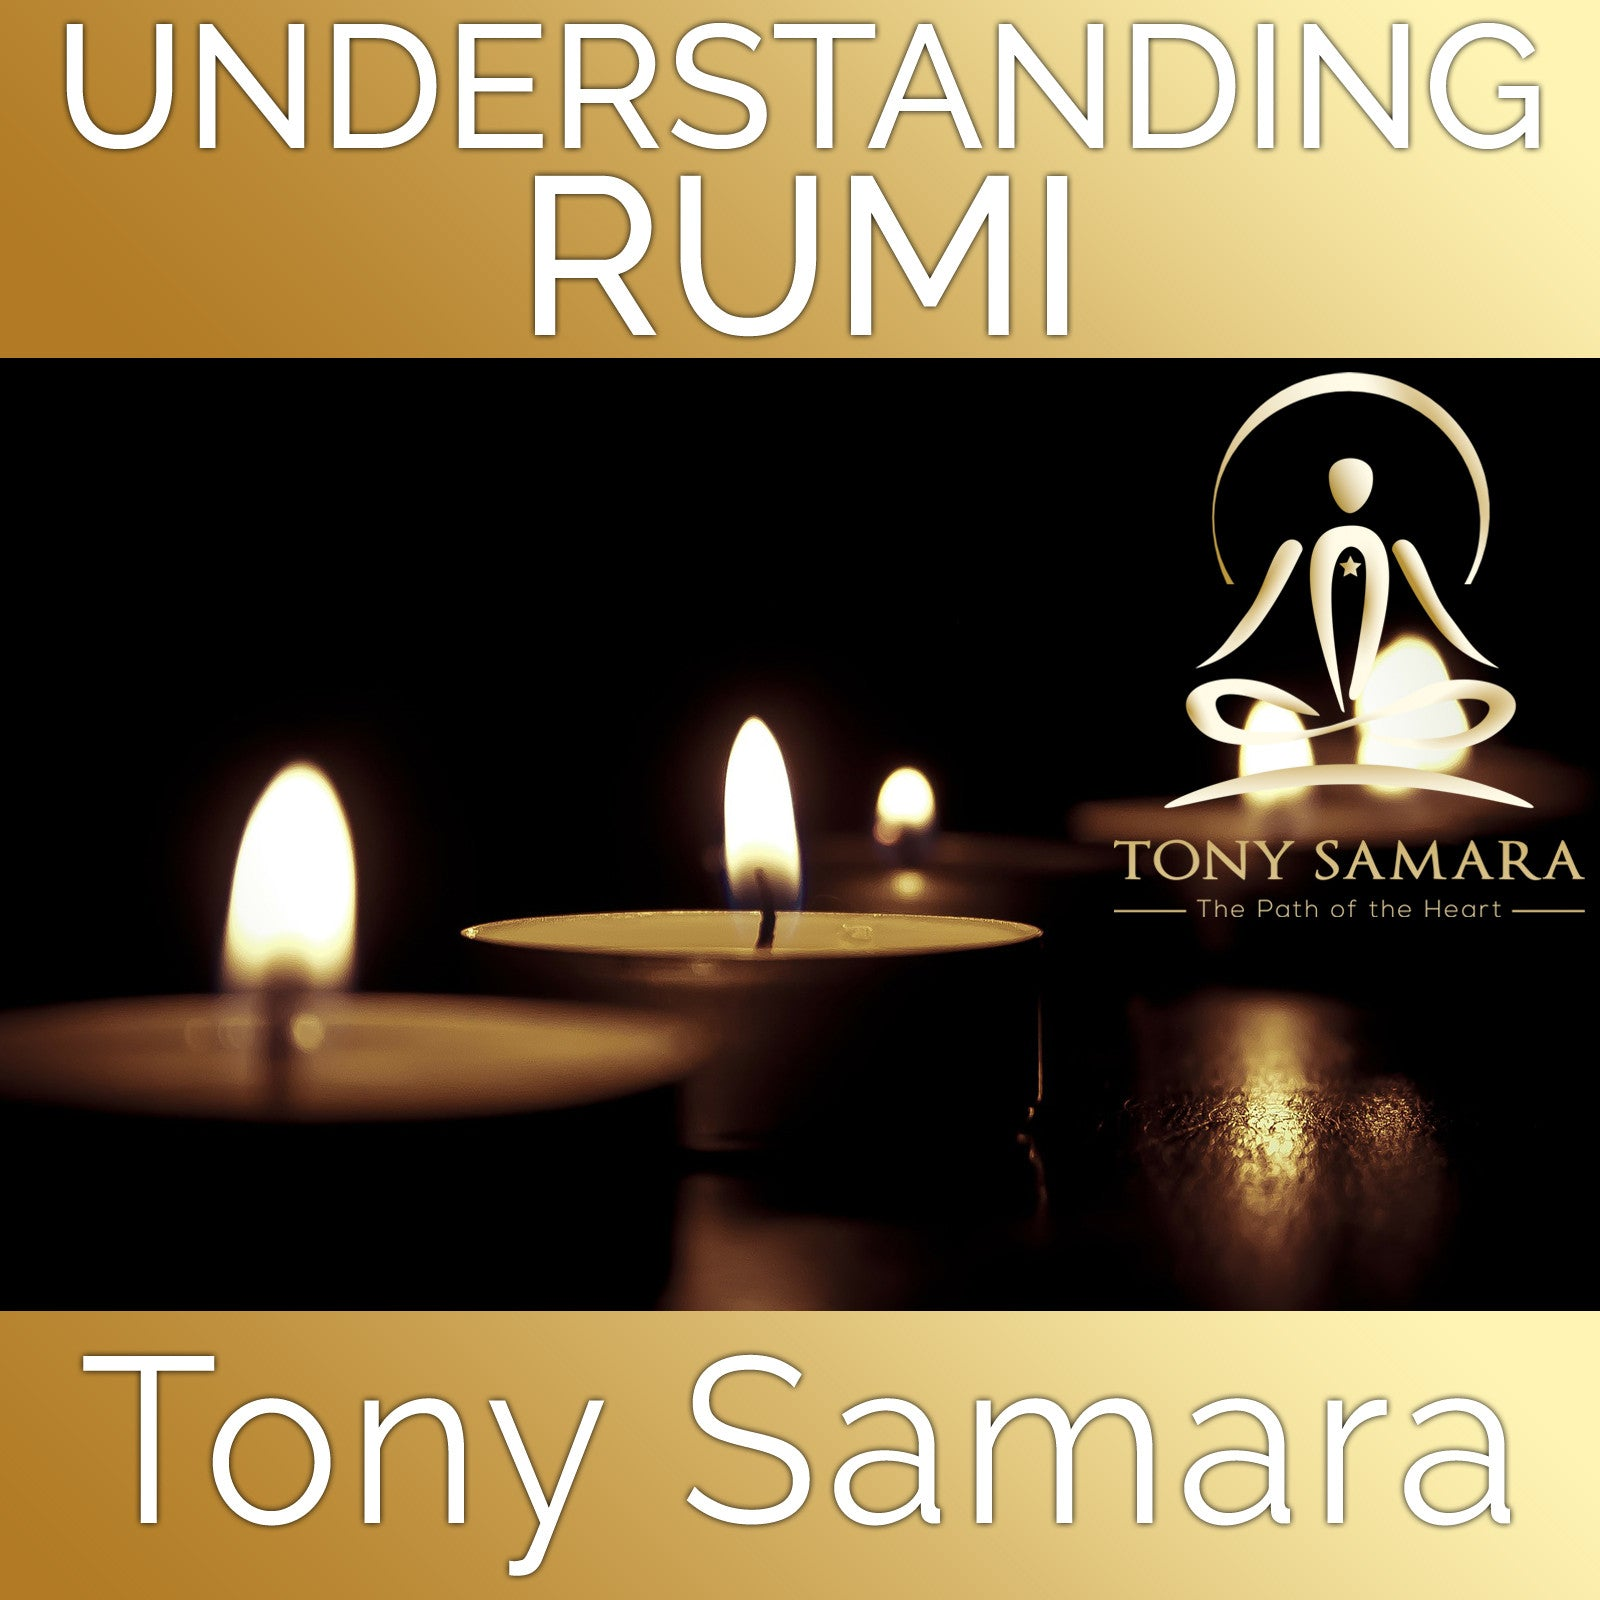 Understanding Rumi (MP3 Audio Download) - Tony Samara Meditation